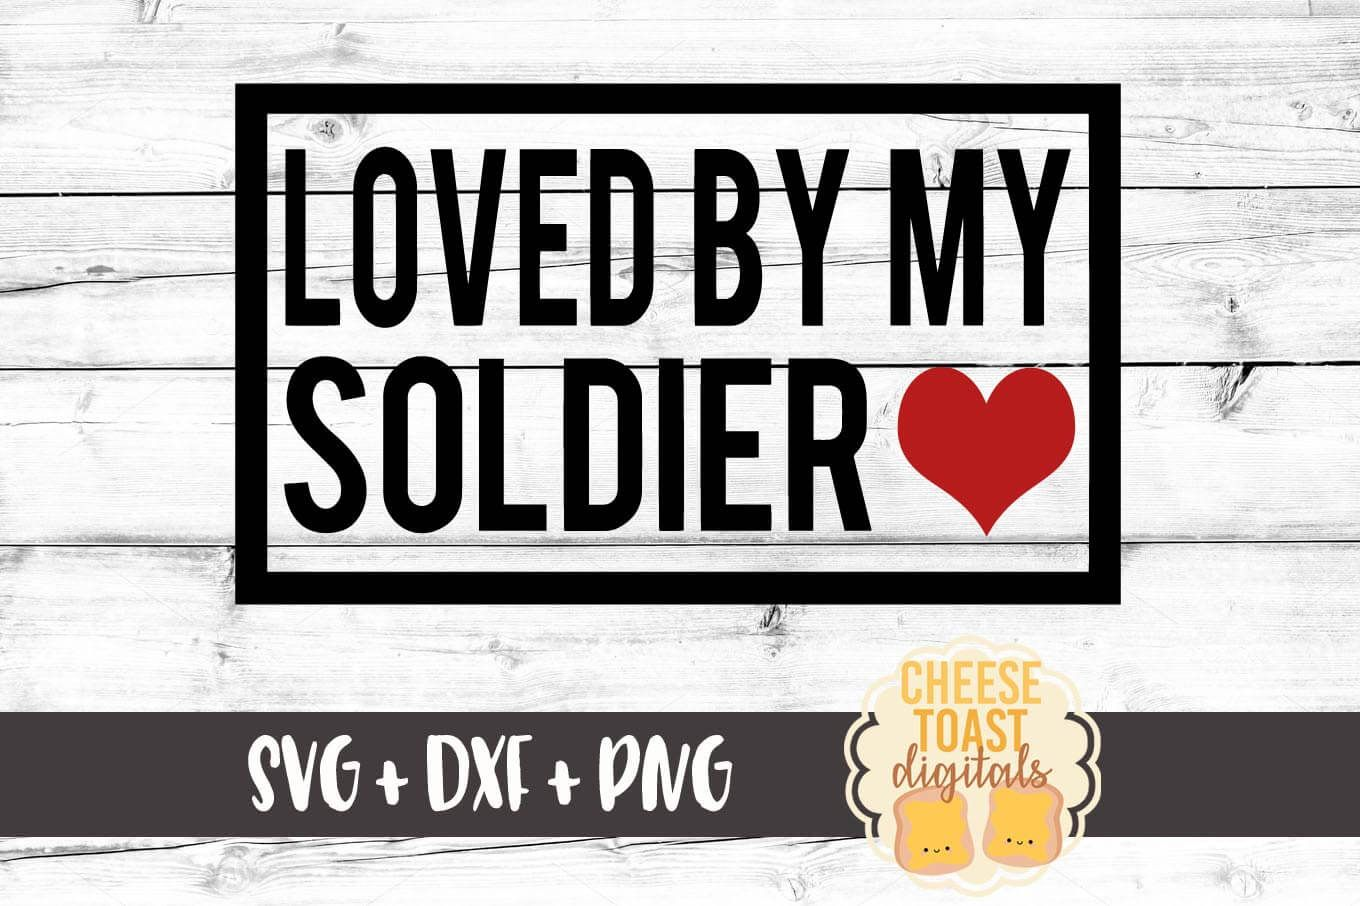 Loved by My Soldier (Graphic) by CheeseToastDigitals